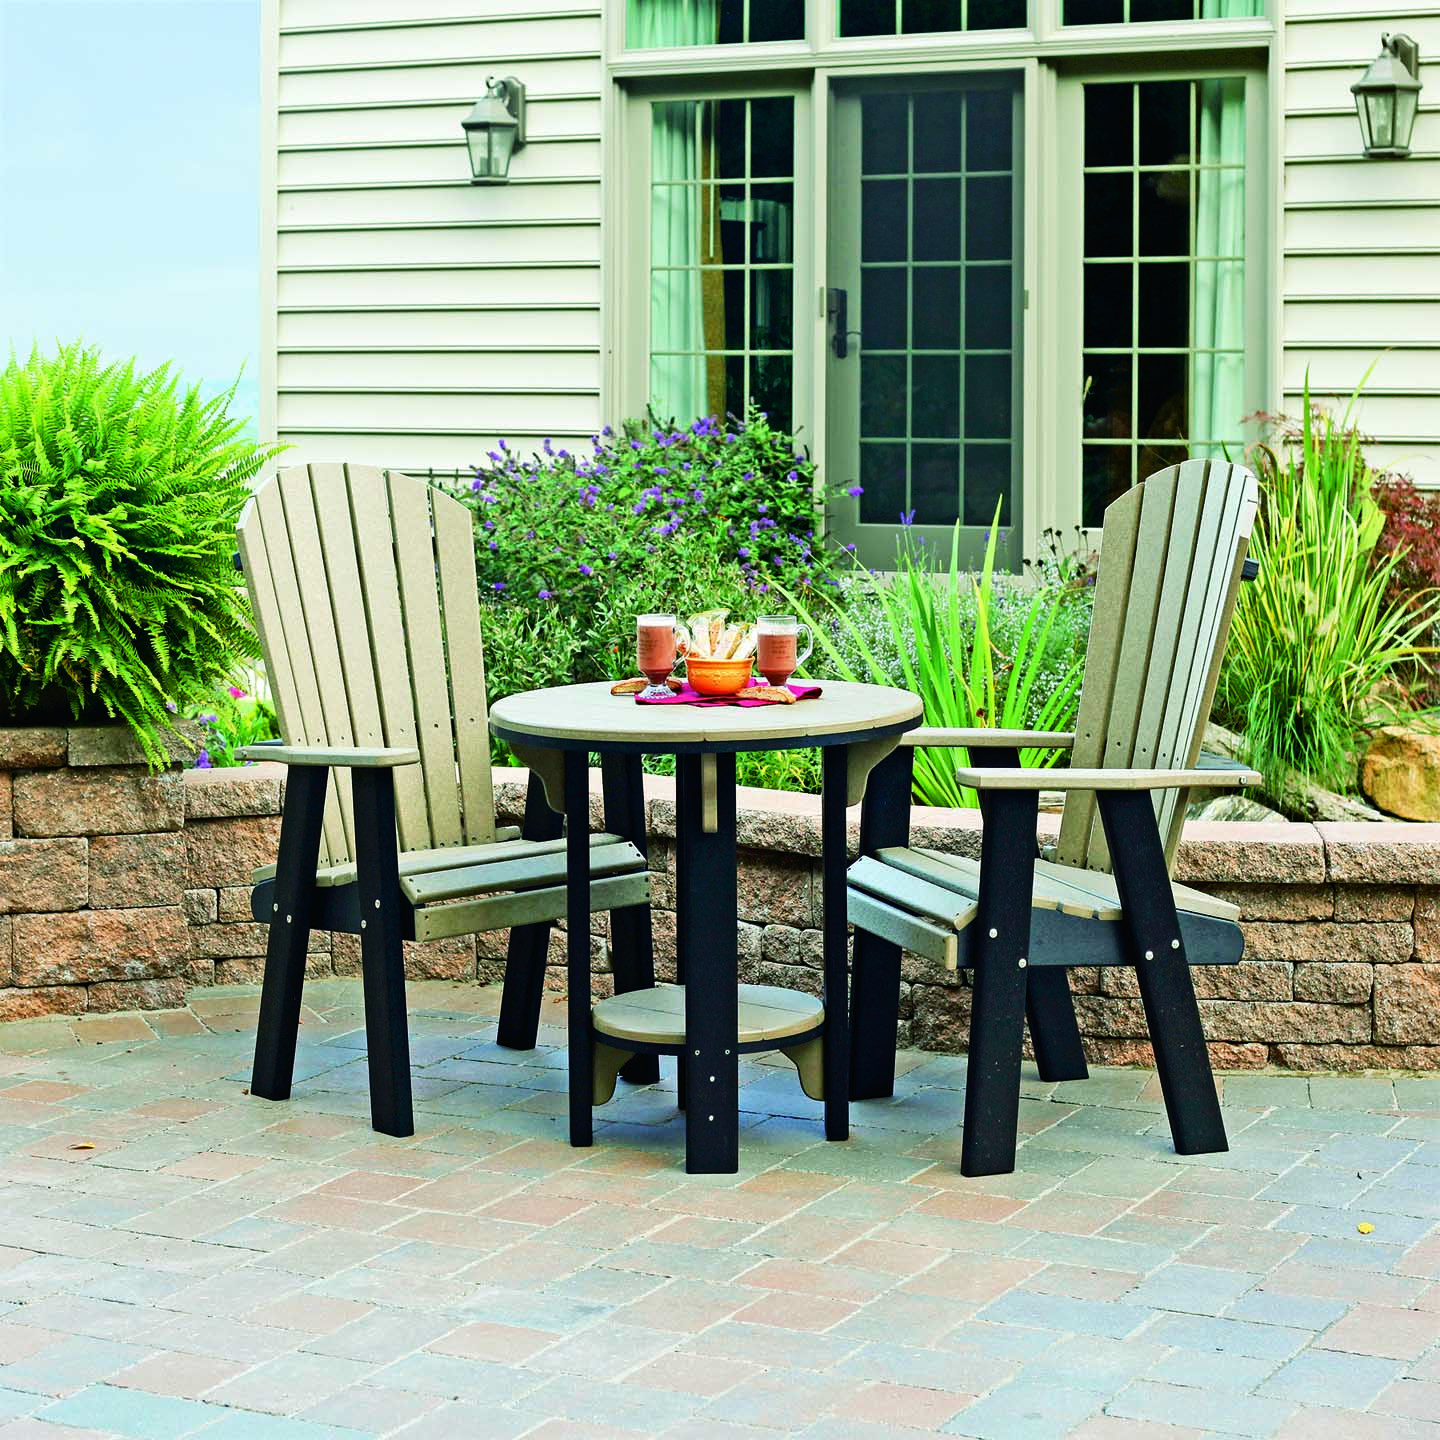 Poly Bistro Table - Weatherwood & Black (Other pieces in the set sold separately)